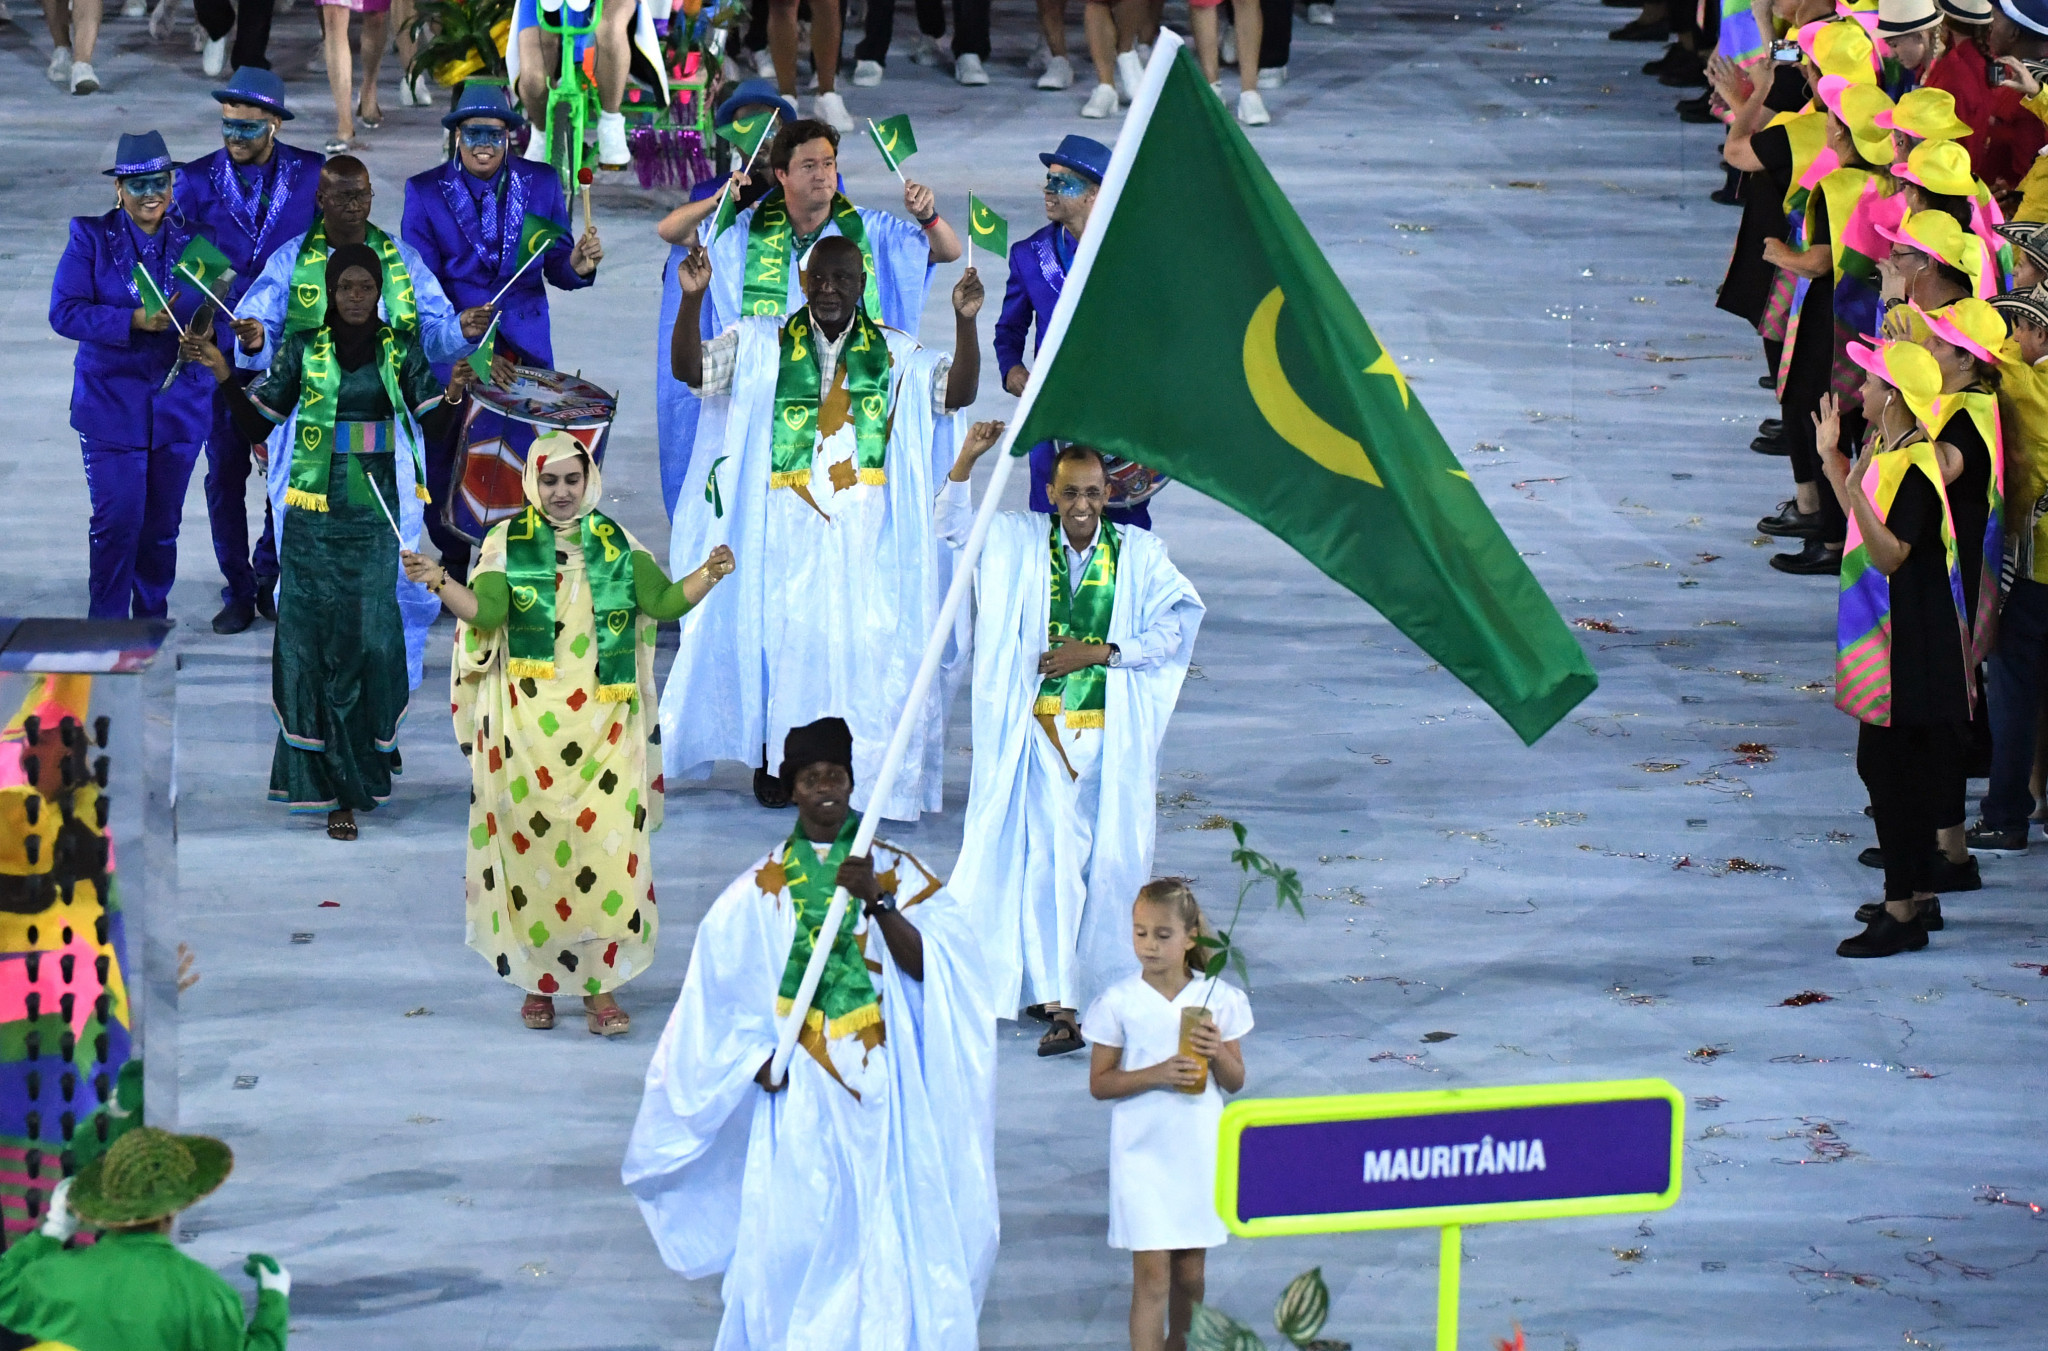 Mauritania has competed at every Summer Olympics since Los Angeles 1984 ©Getty Images